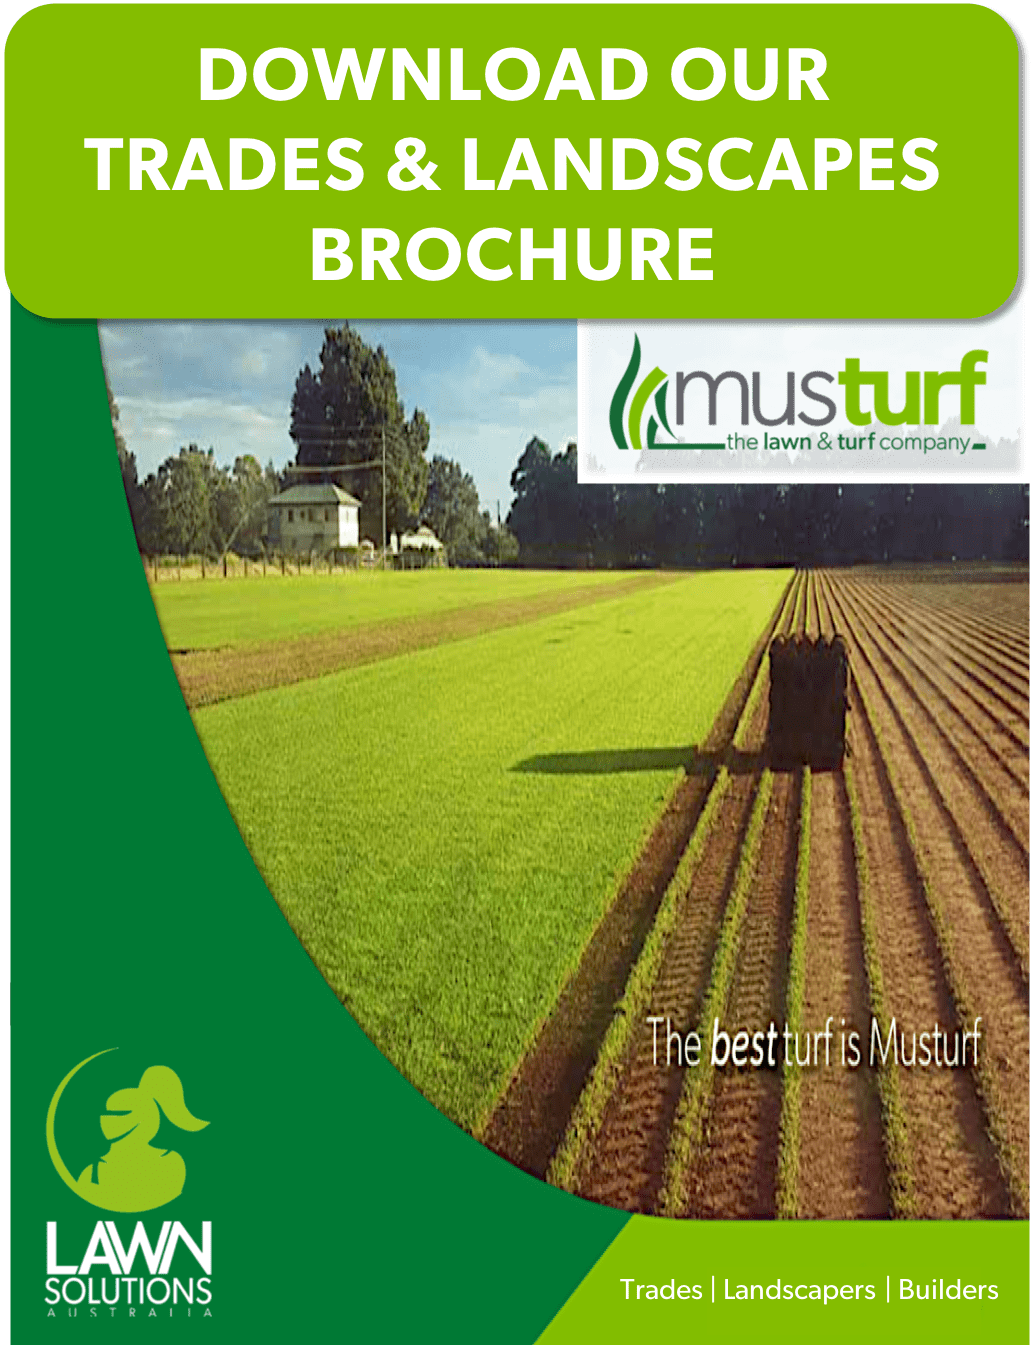 Lawn Supply Installation and Care Services | Trades Landscapers Builders